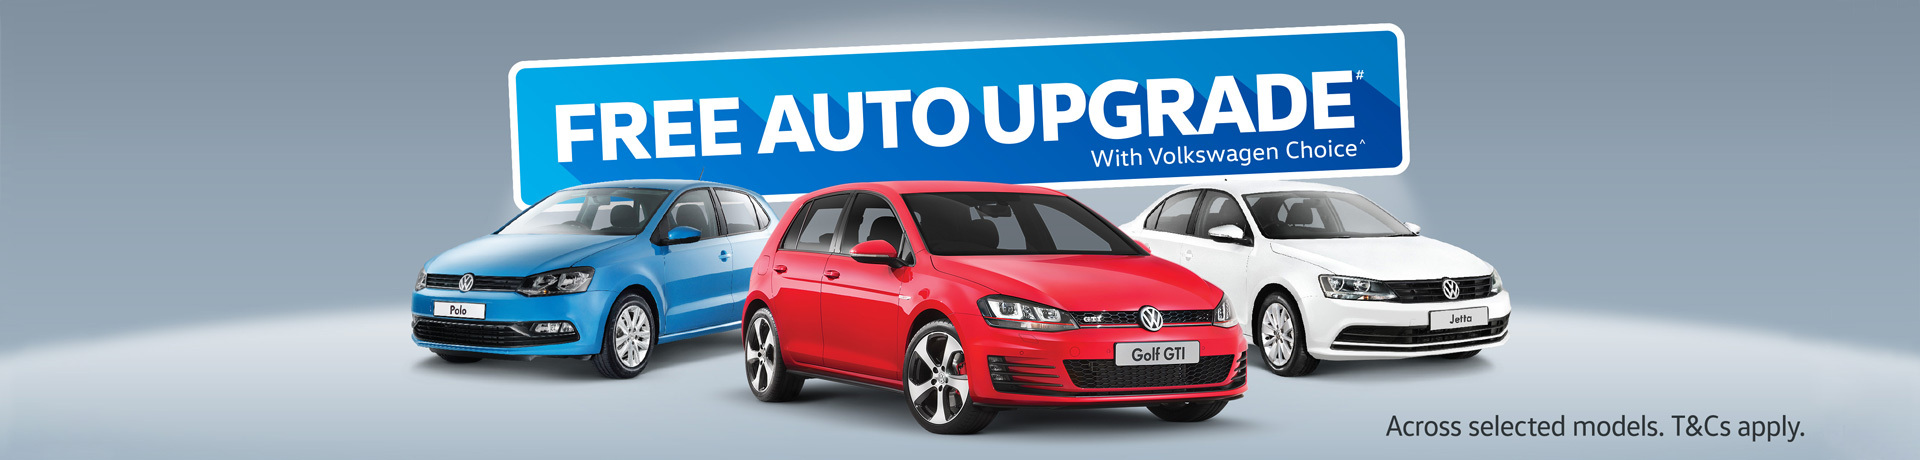 Volkswagen - National offer - Free Auto upgrade when you finance